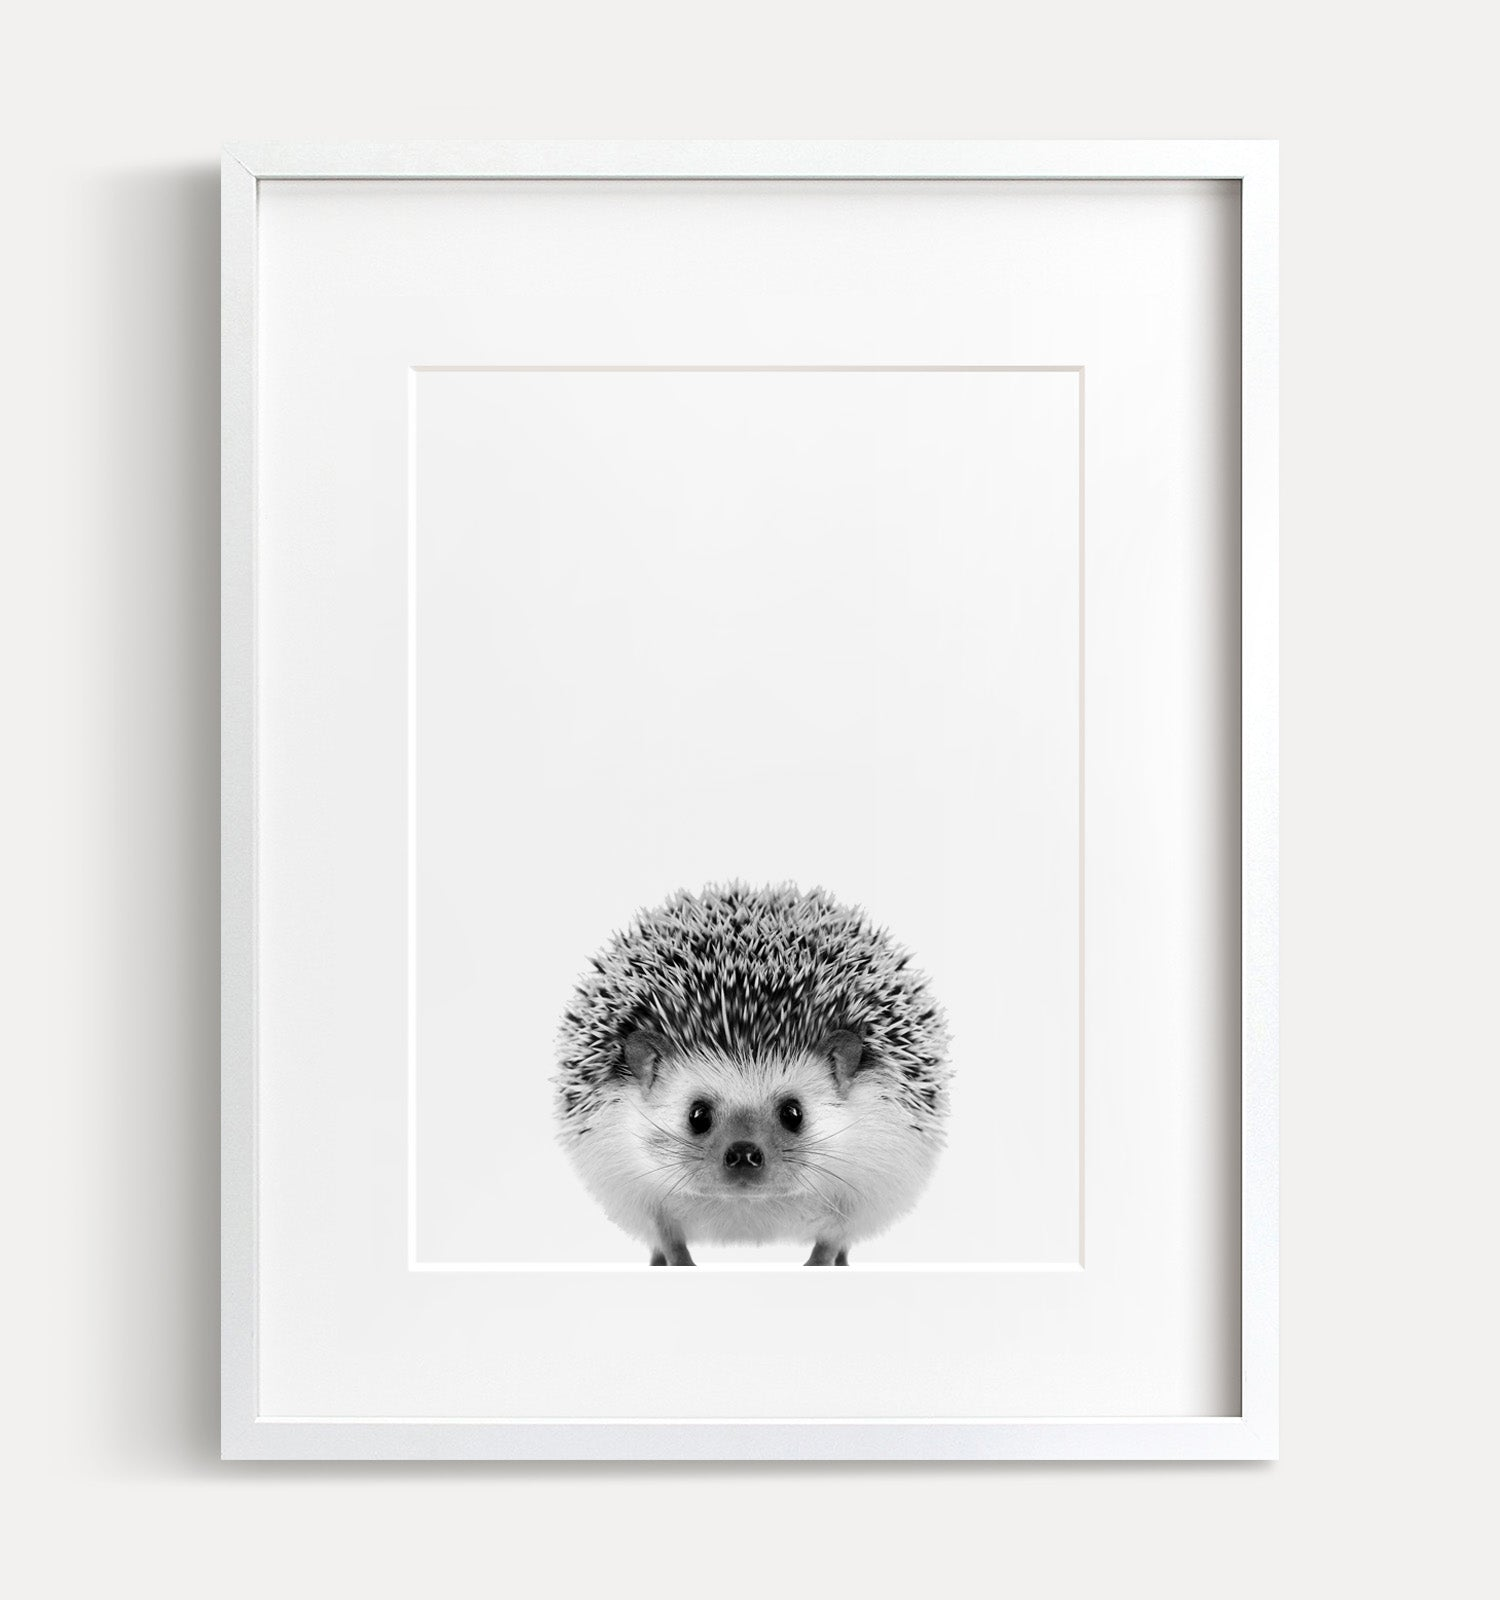 Baby Hedgehog Printable Art - Black and White